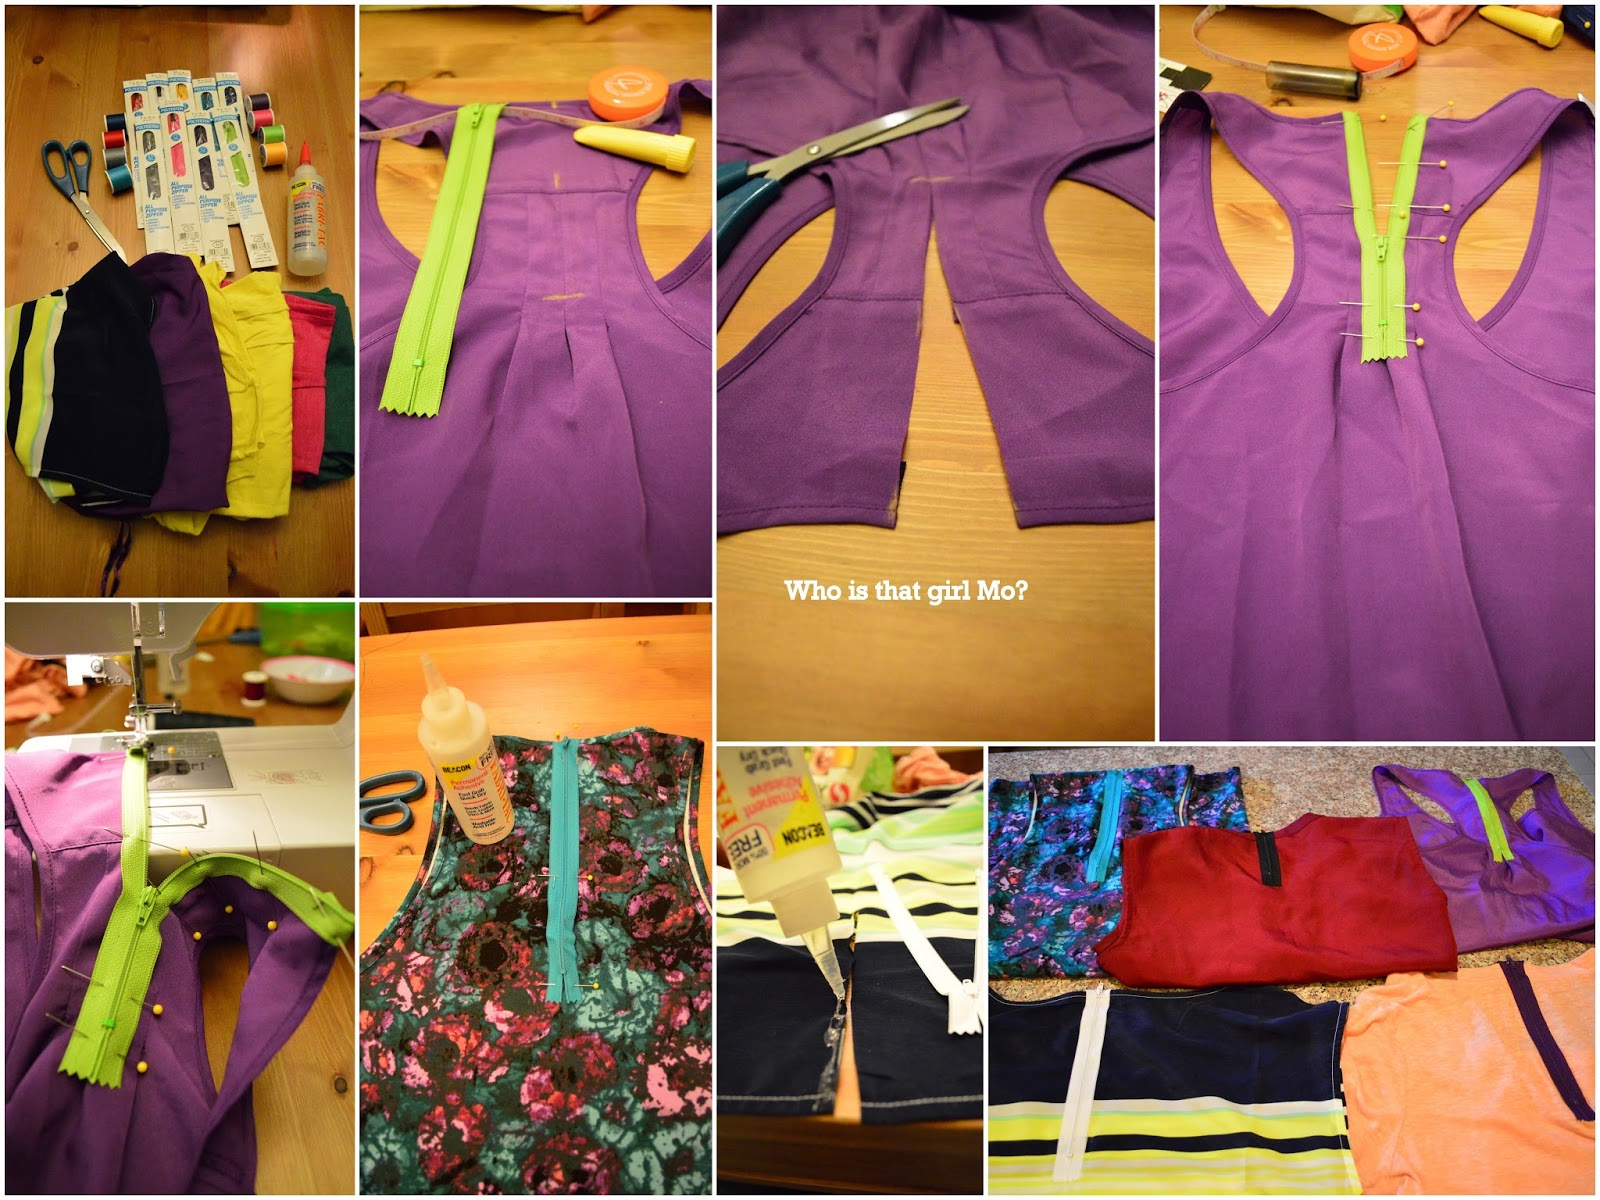 exposed zipper diy {who is that girl mo?}